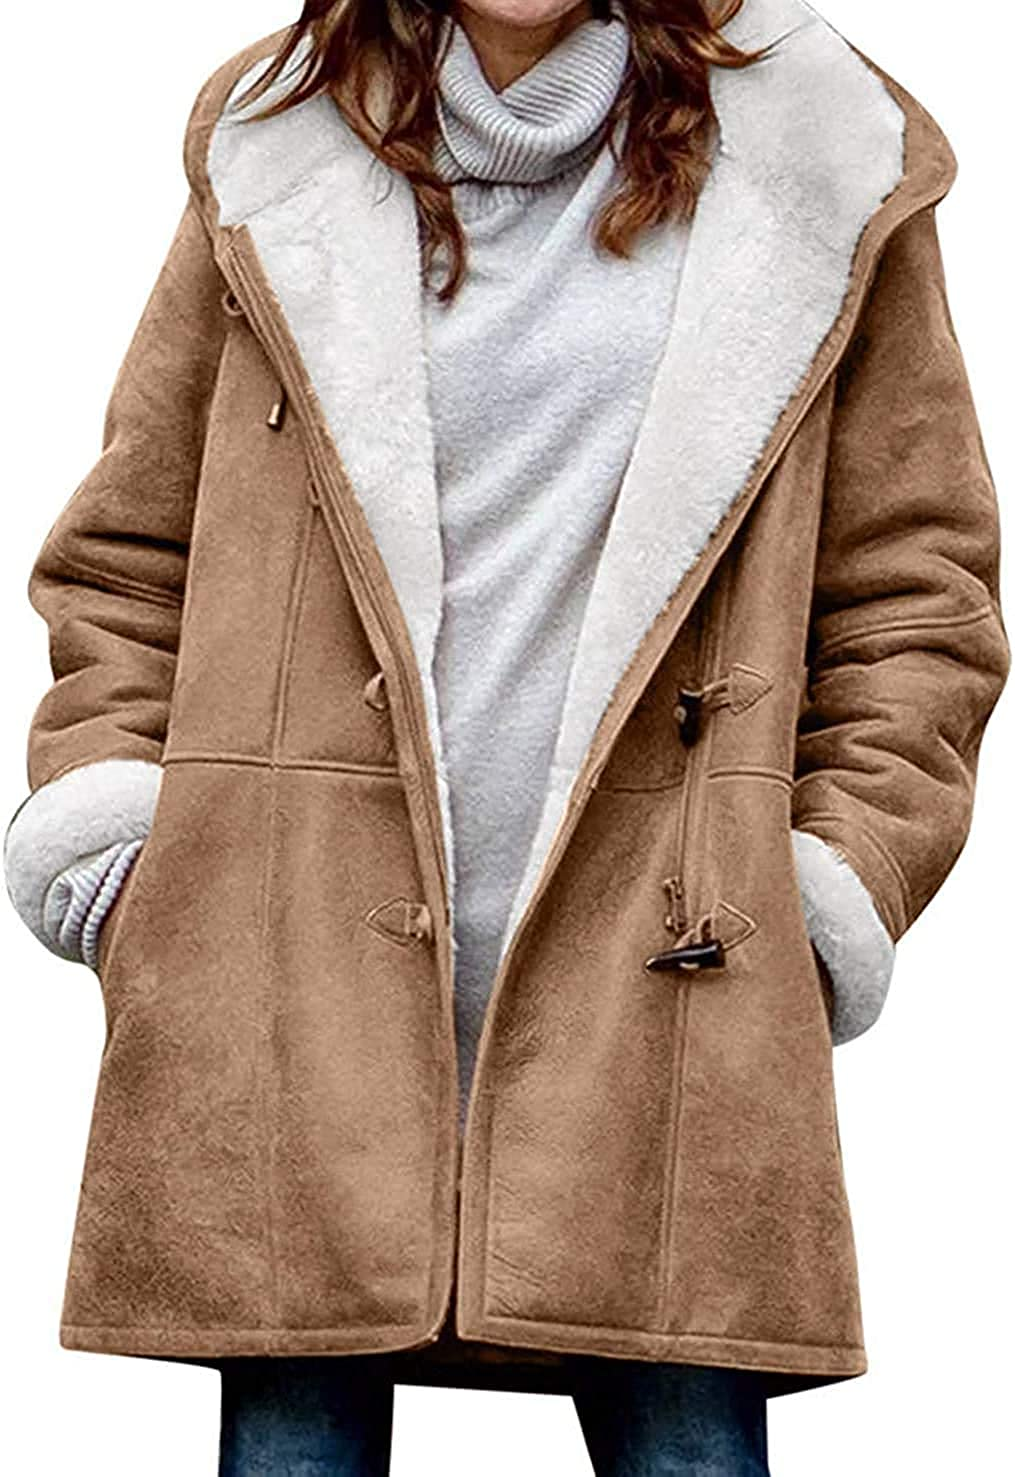 chouyatou Women's Winter Warm Sherpa Lined Suede Leather Longline Coat with Horn Buttons